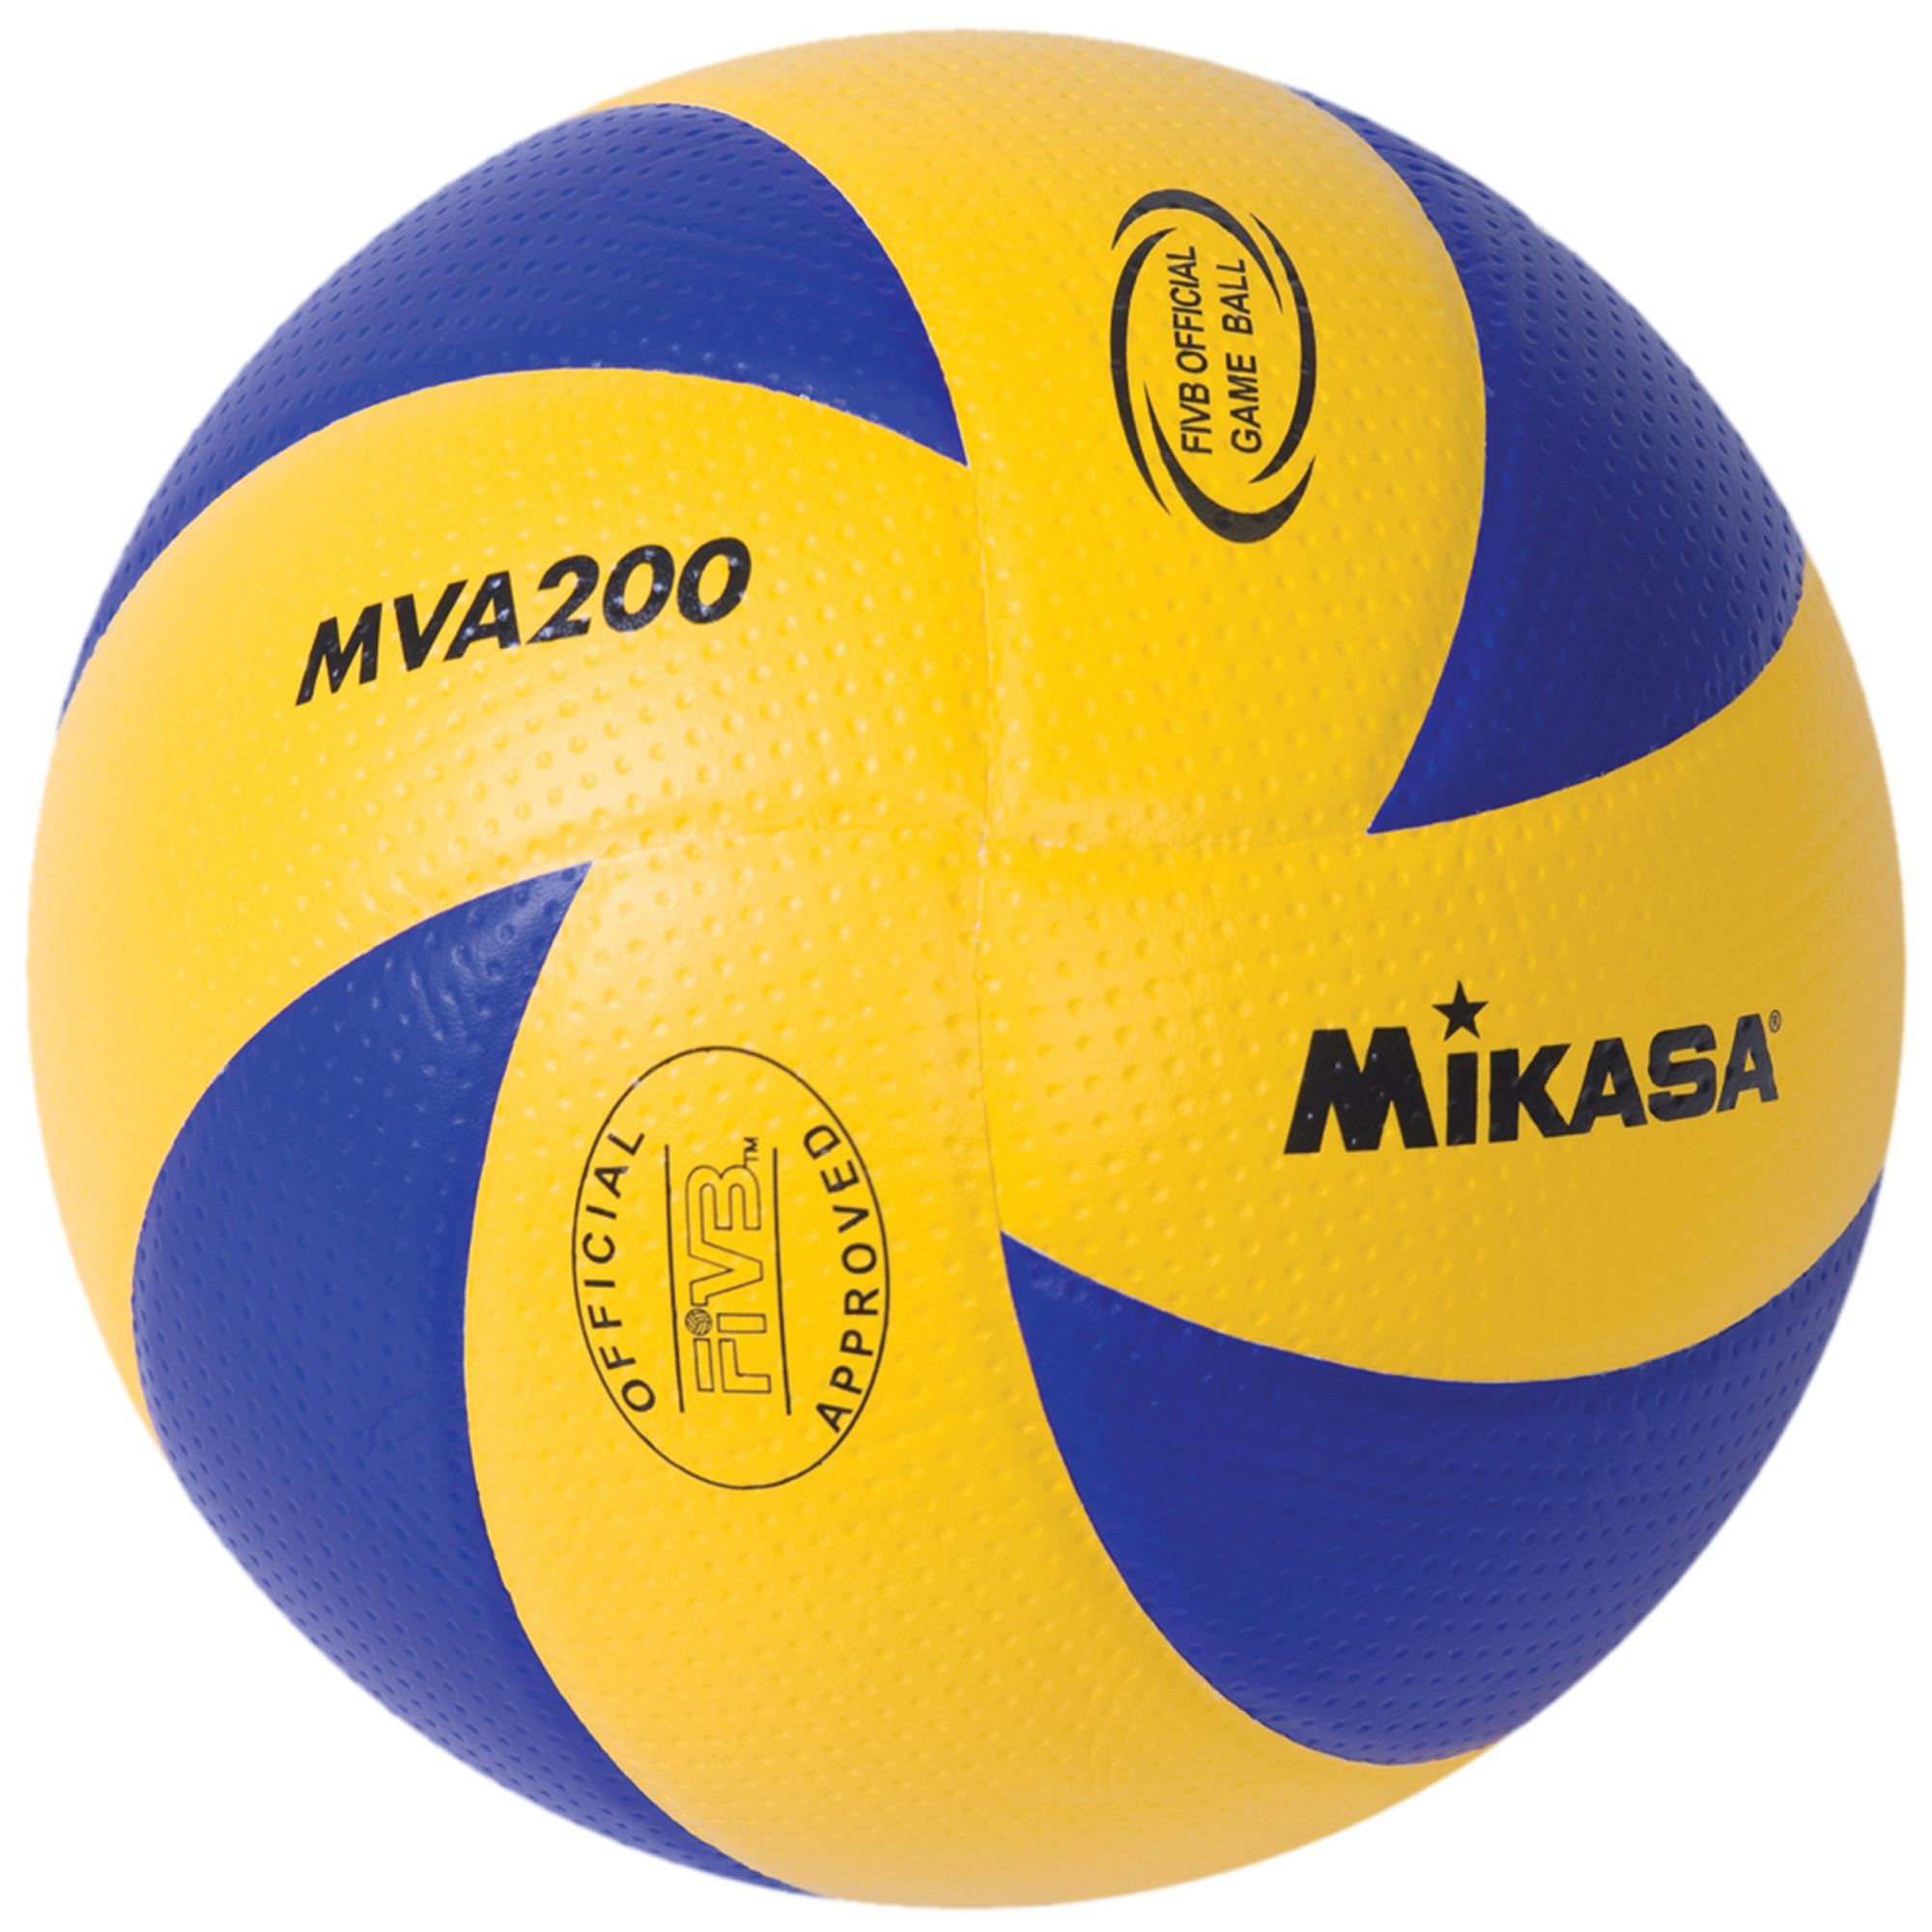 Mikasa Official Indoor London Olympic Volleyball Voley Voleibol Frases Voleyball